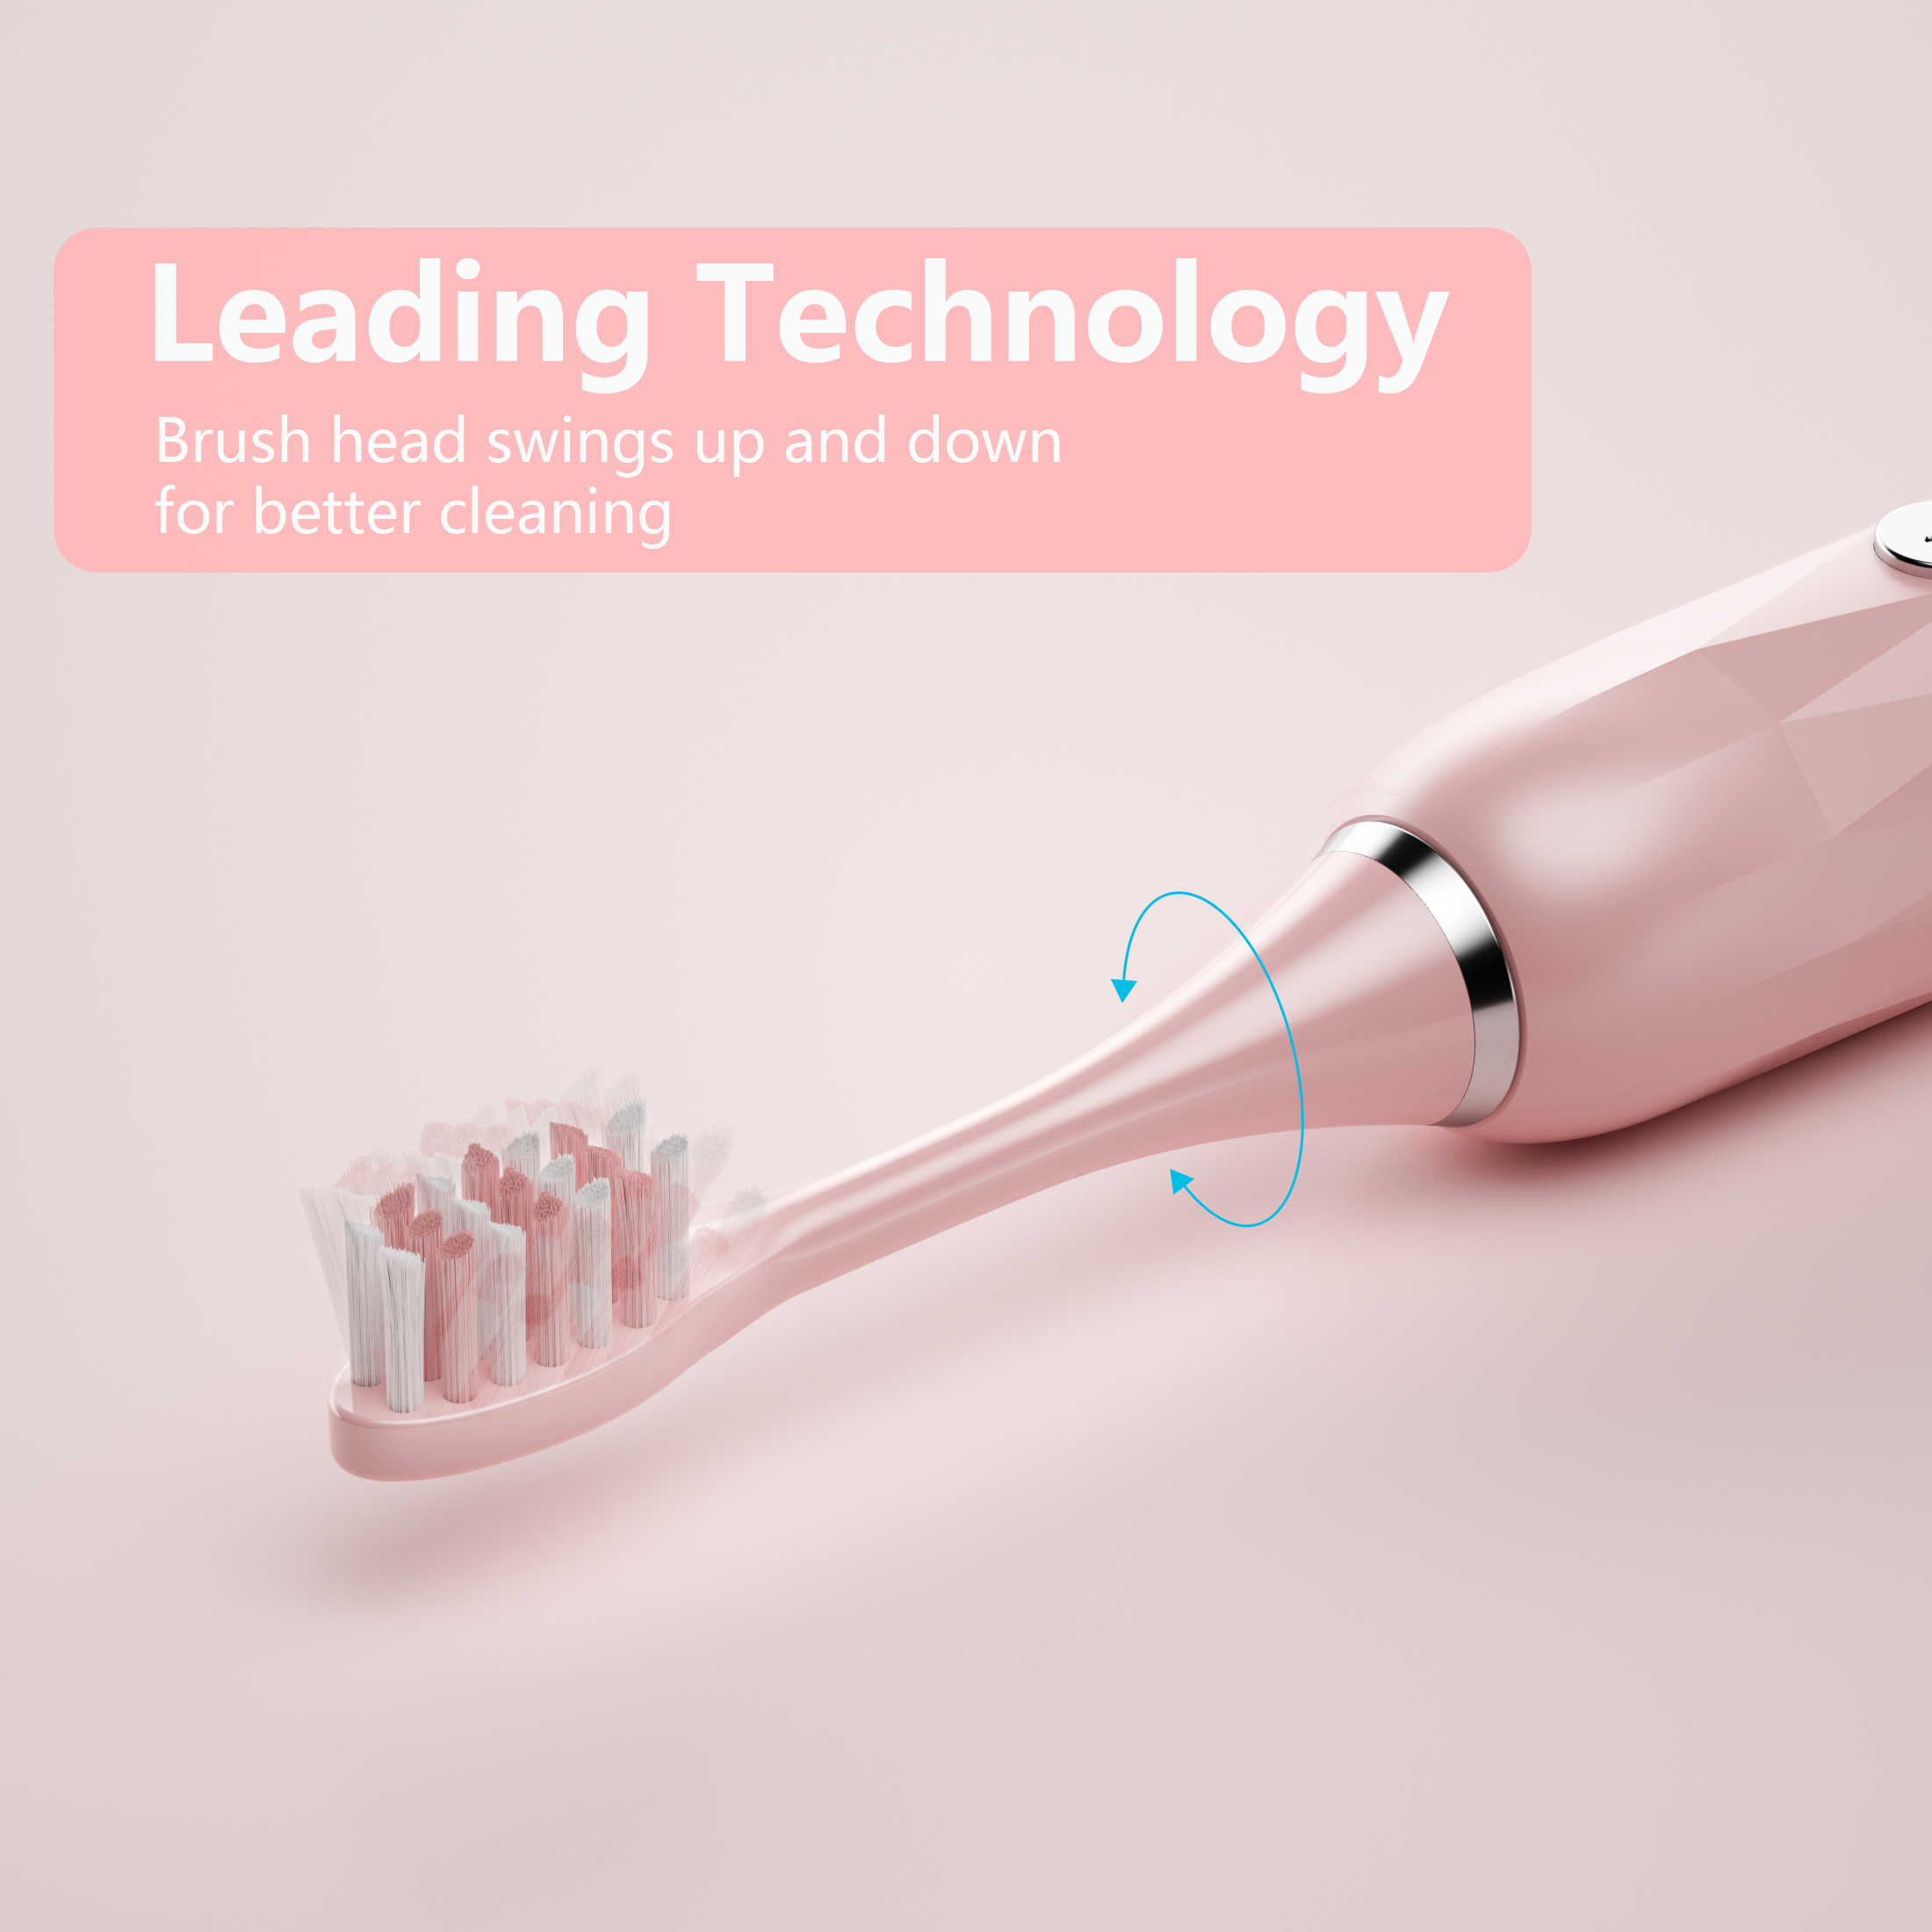 Image 5 - Powerful Ultrasonic Sonic Electric Toothbrush New Design USB Rechargeable Tooth Brushes Waterproof Whitening Healthy Best Gift-in Electric Toothbrushes from Home Appliances